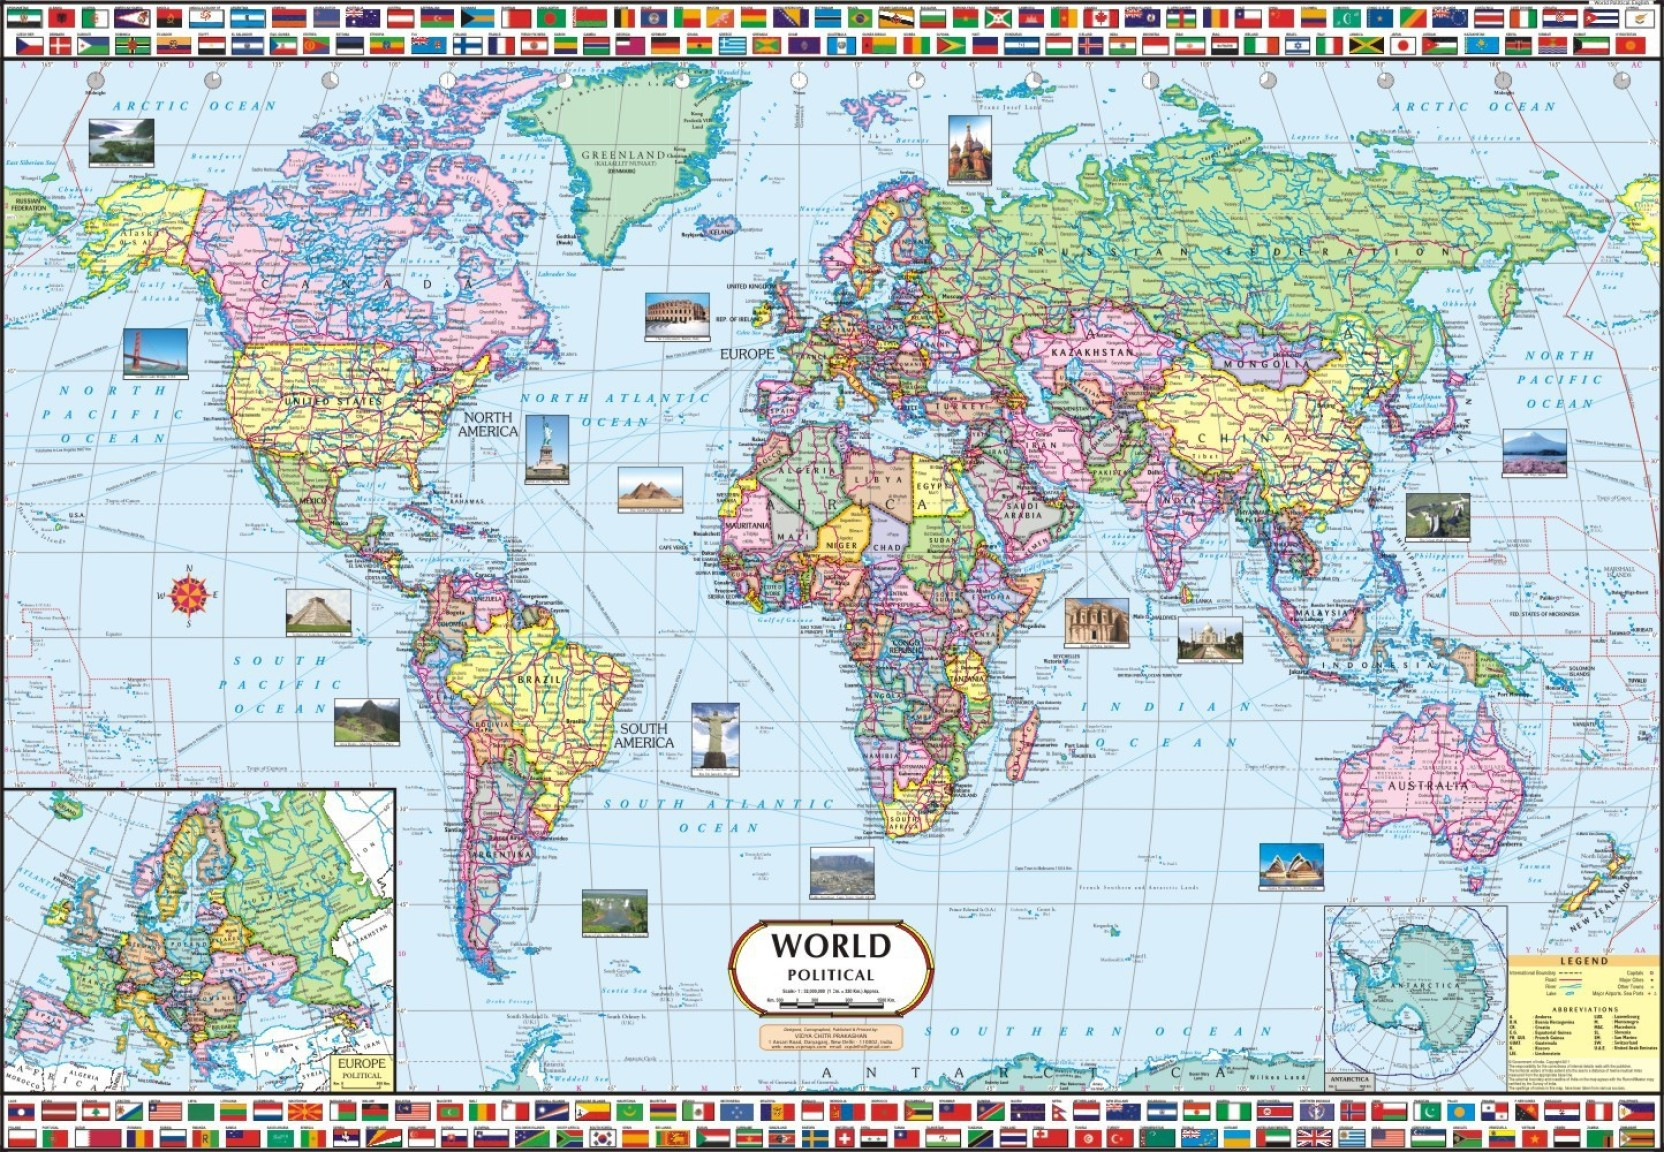 World map political wall chart paper print buy world map world map political wall chart paper print add to cart gumiabroncs Image collections